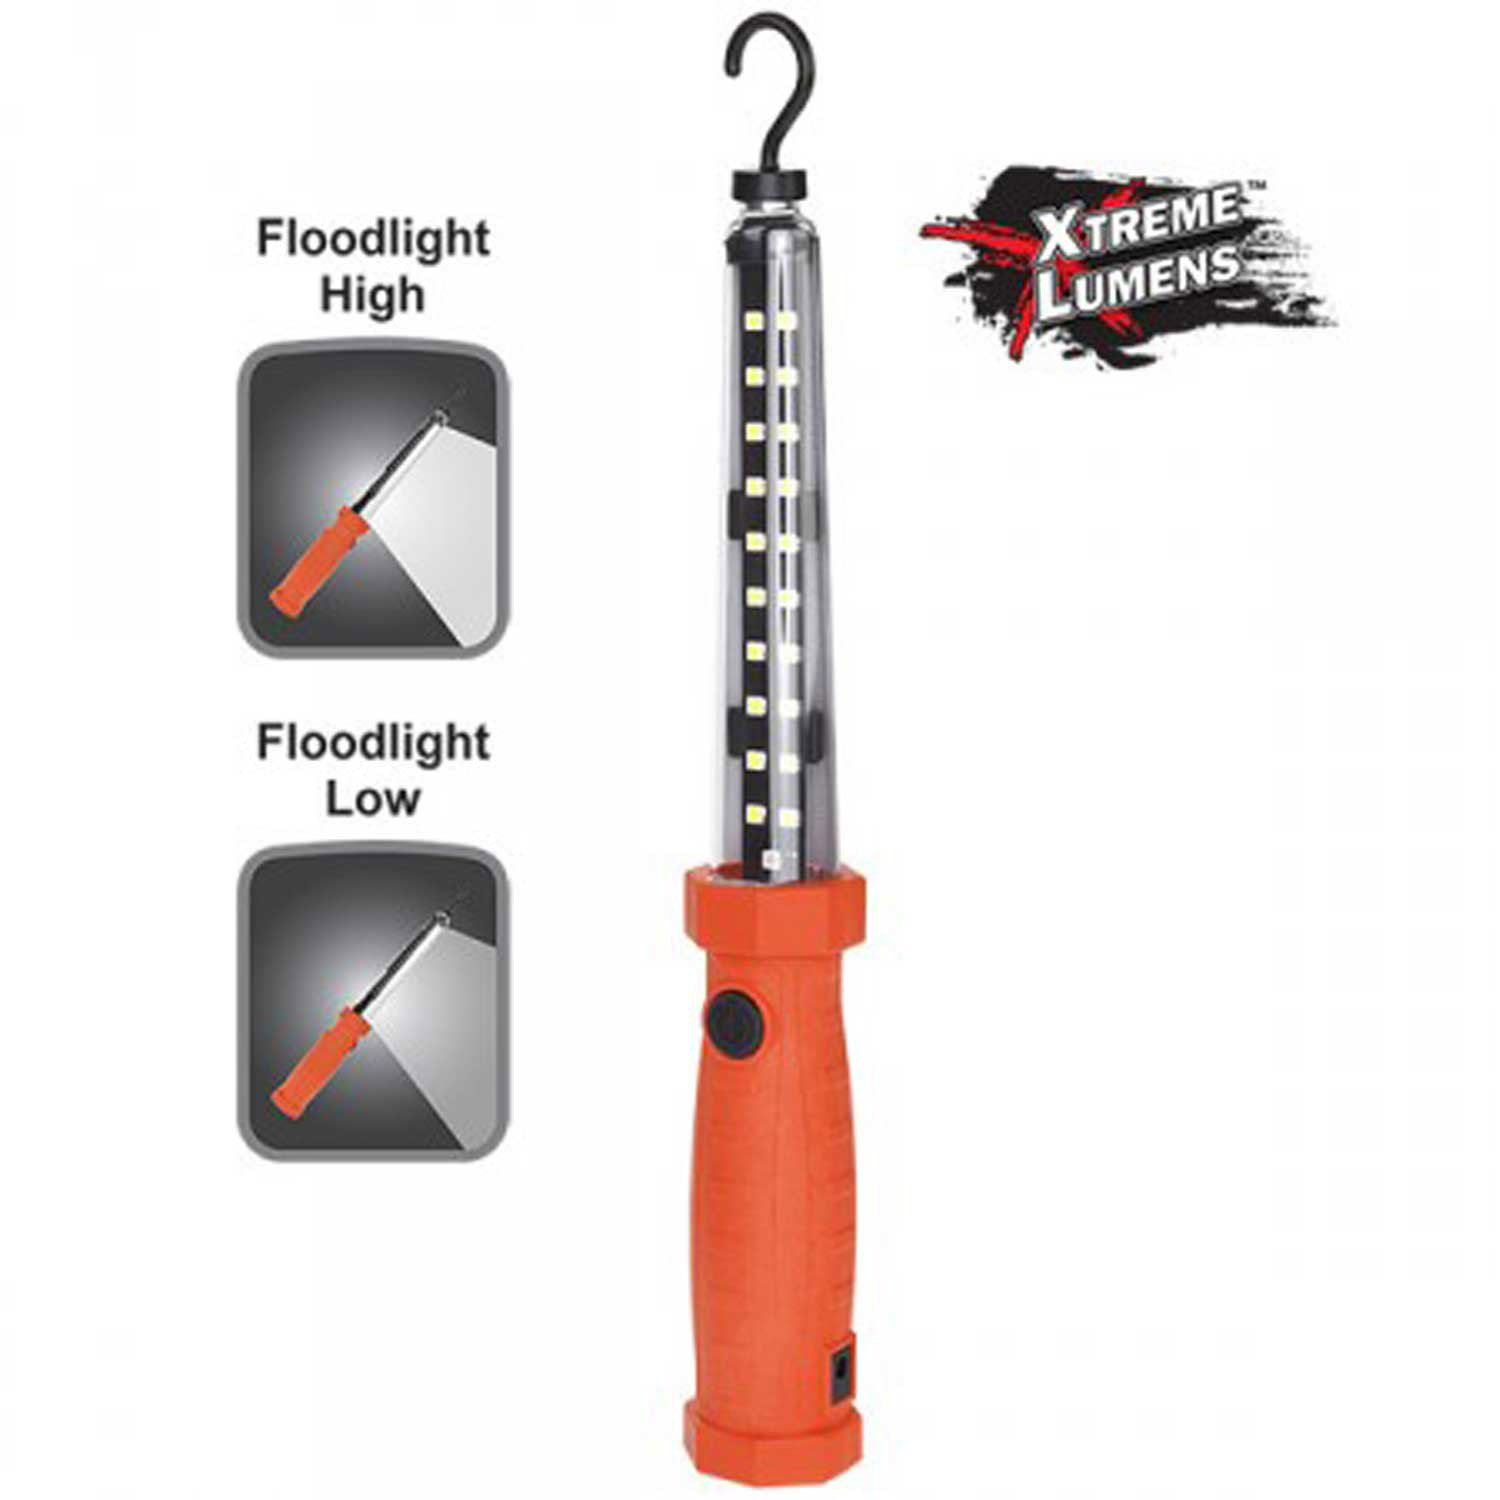 Xtreme LumensTM Rechargeable Multi-Purpose LED Work Light - Red - Lot of 2